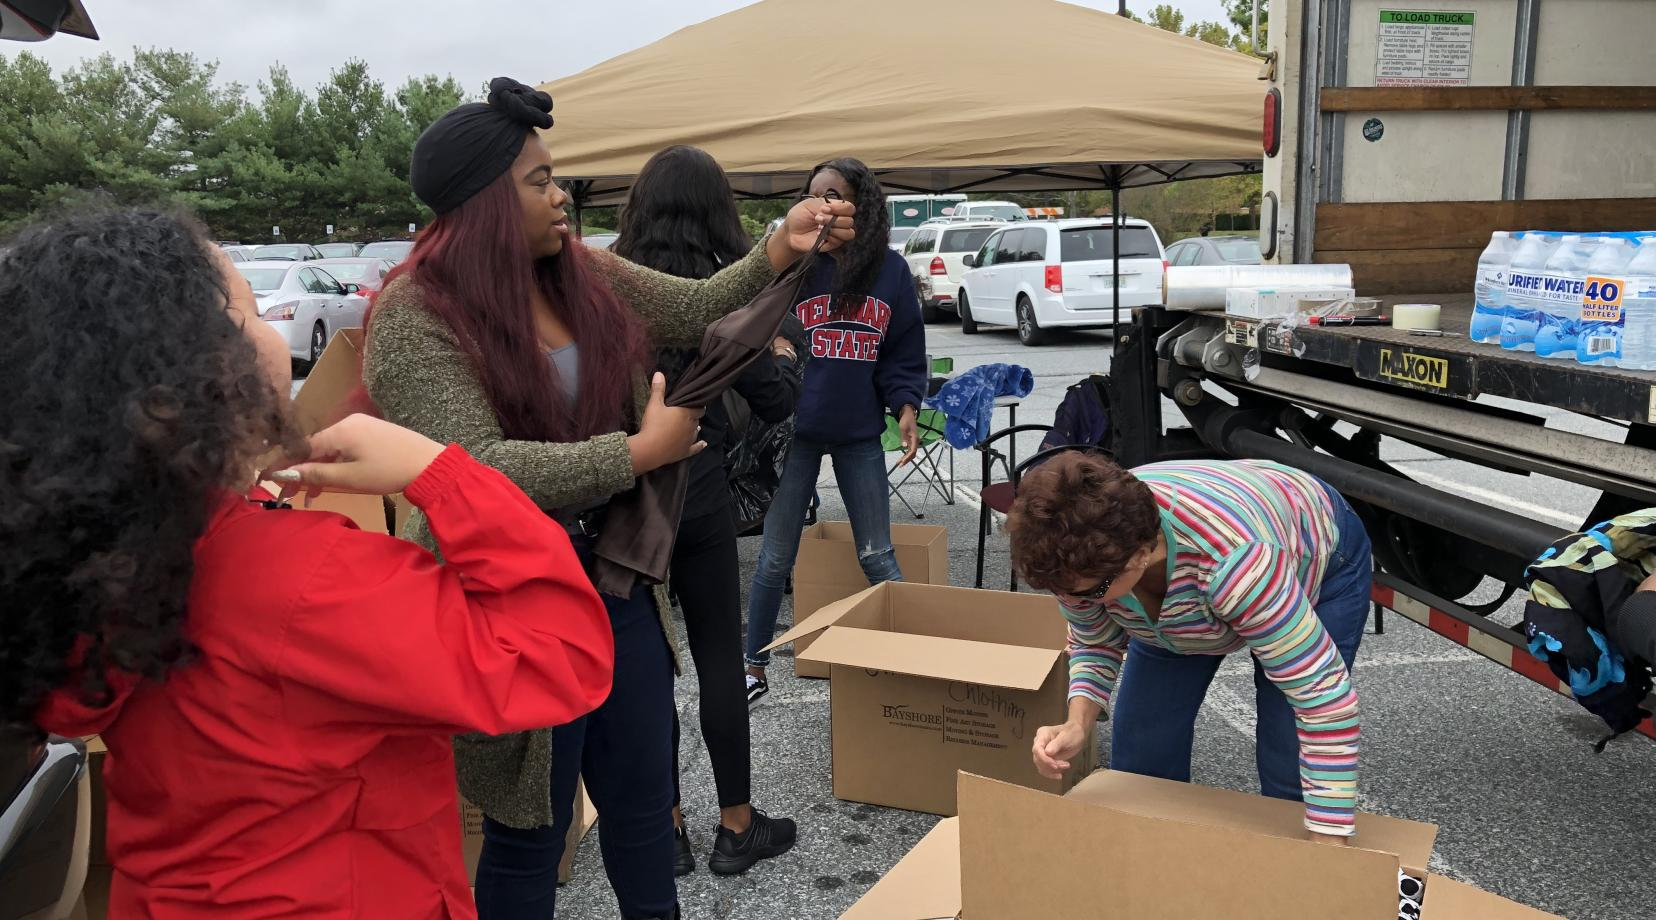 <p>Members of the DSU Women's Senate prepare to send items collected on campus to be joined with a larger statewide effort to provide emergency relief to the Hurricane Harvey region of Texas.</p>